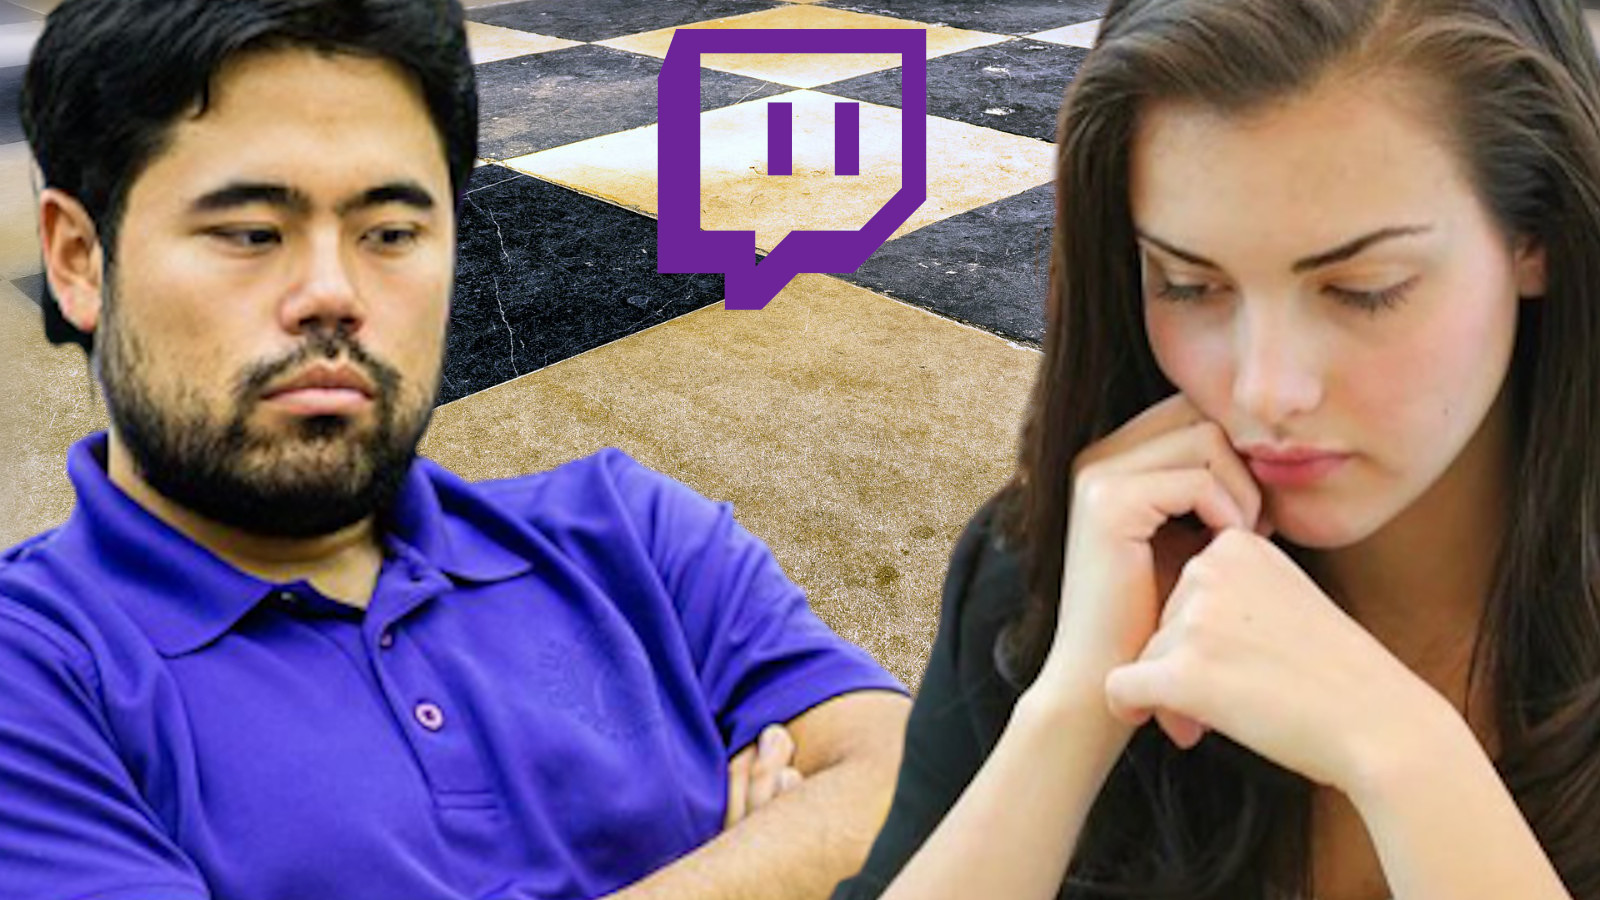 Hikaru calls out Alexandra Botez for streaming chess in just chatting